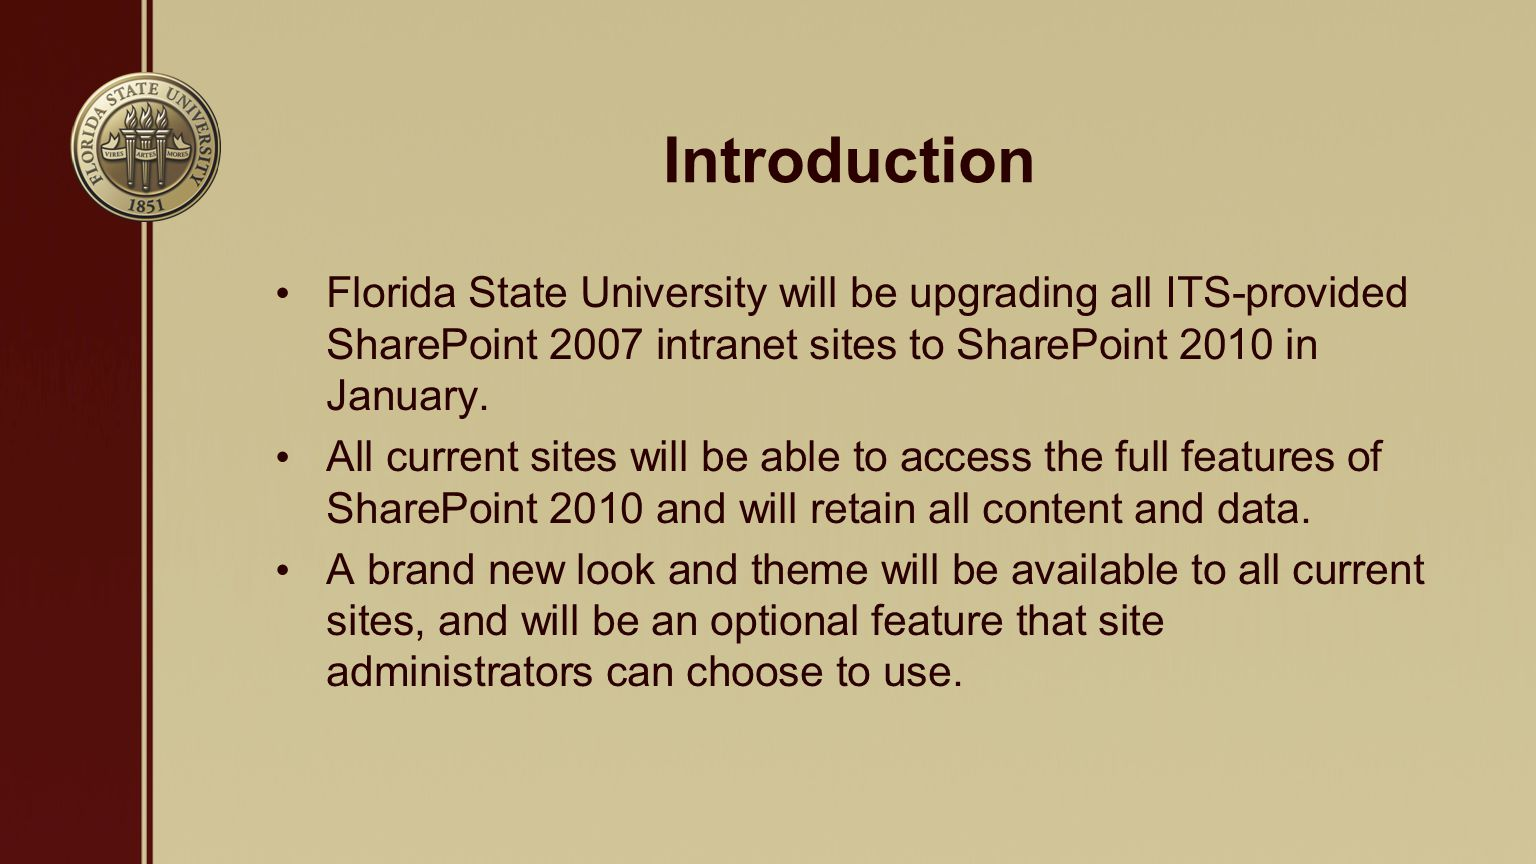 Introduction Florida State University will be upgrading all ITS-provided SharePoint 2007 intranet sites to SharePoint 2010 in January.